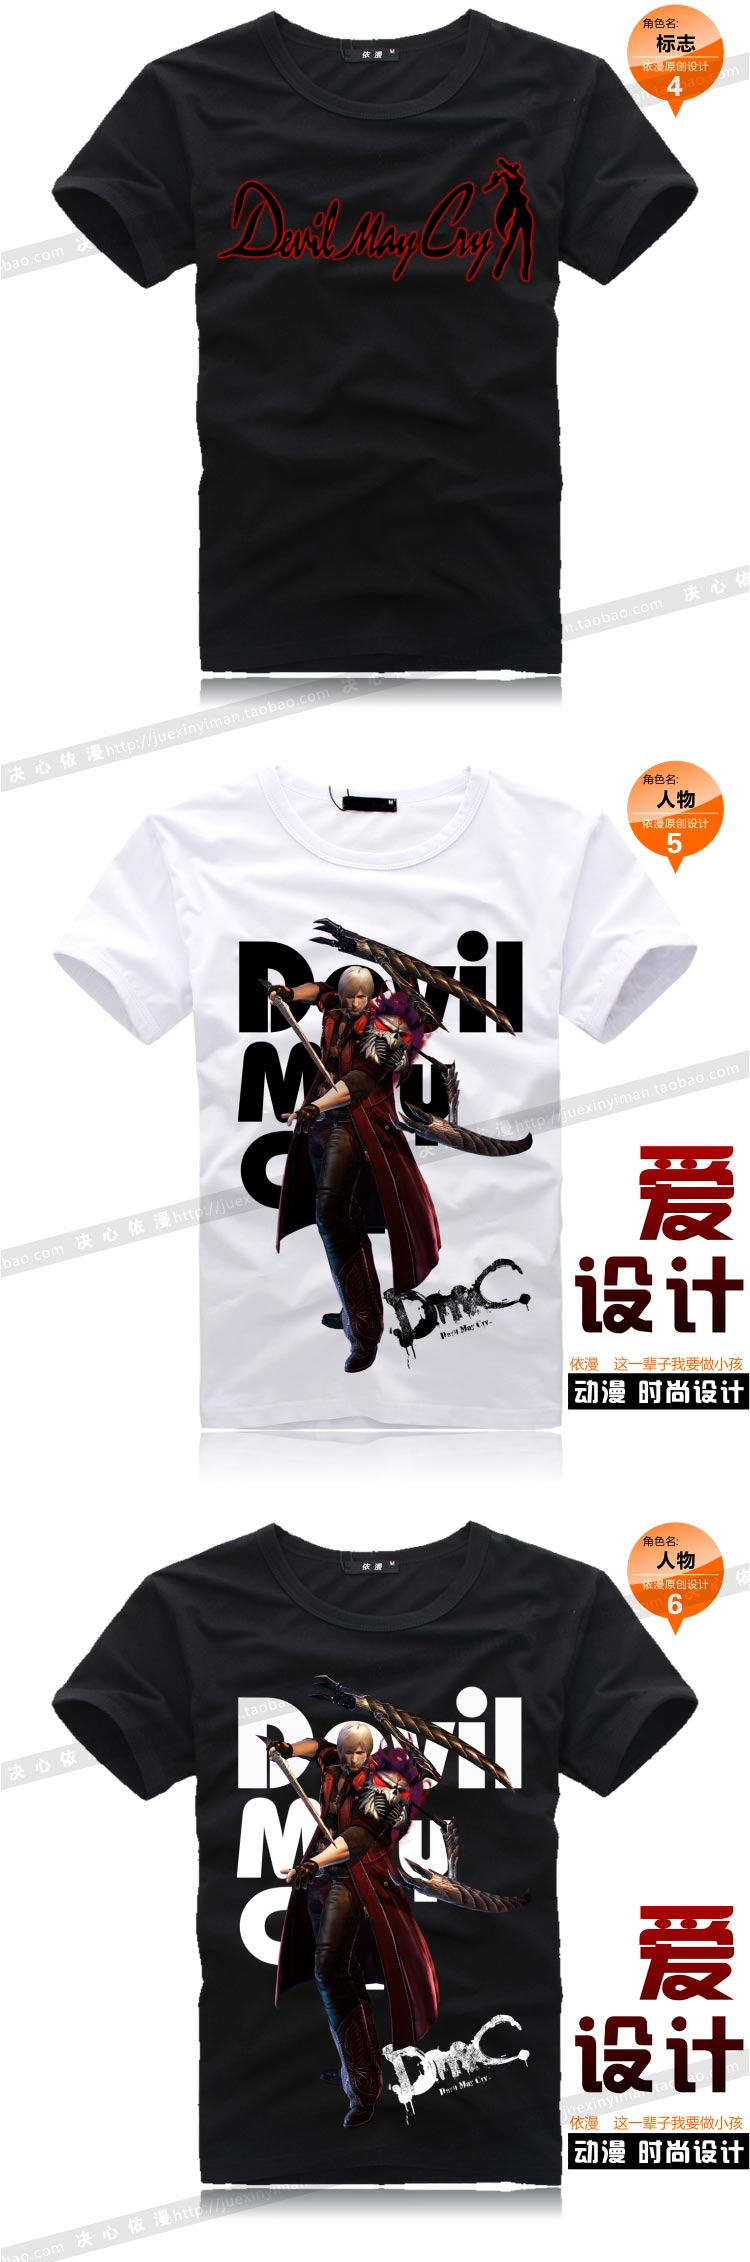 By diffuse Devil May Cry Devil Fu Man cartoon clothes by people around the DMC logo T-shirt Dante